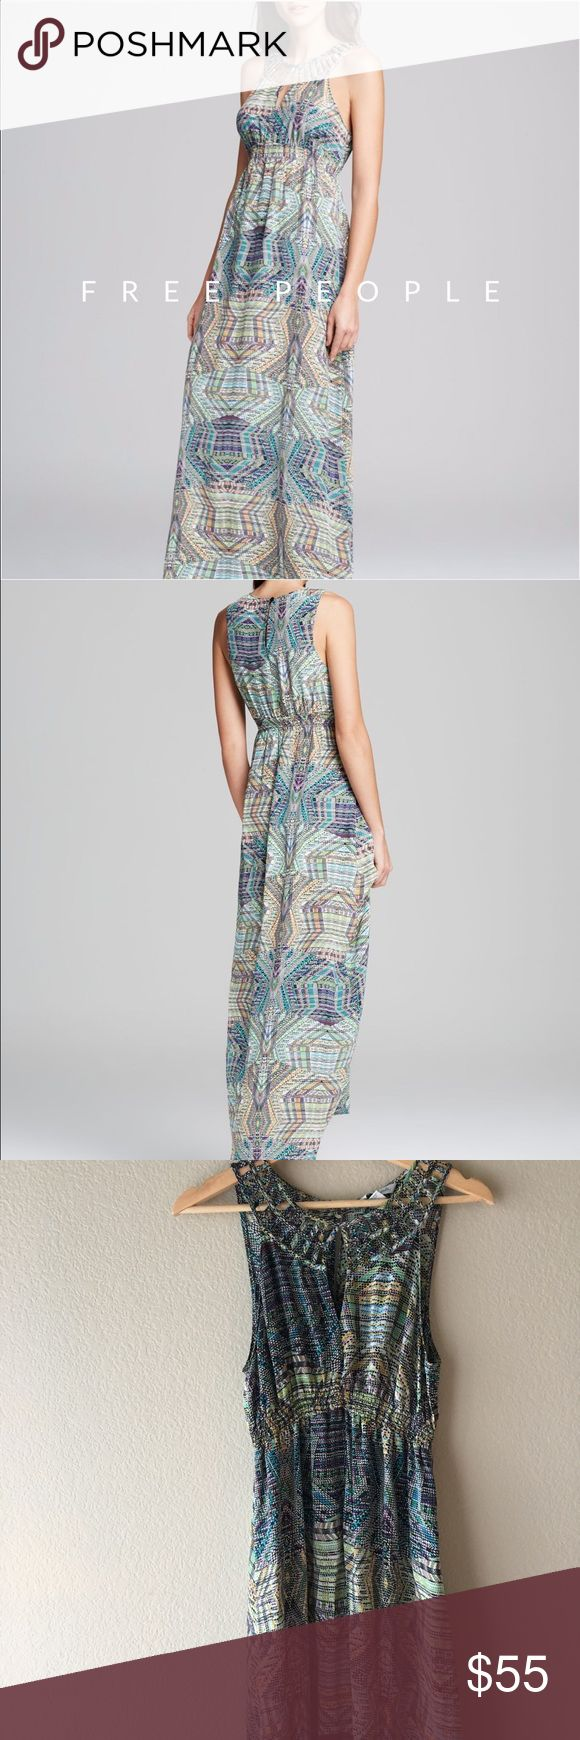 • Free People Charlie Jade Silk dress 100% silk so lightweight and beautiful. I love the simple detailing on the clavicle. Worn only once!! Stretchy elastic around the waist Free People Dresses Maxi